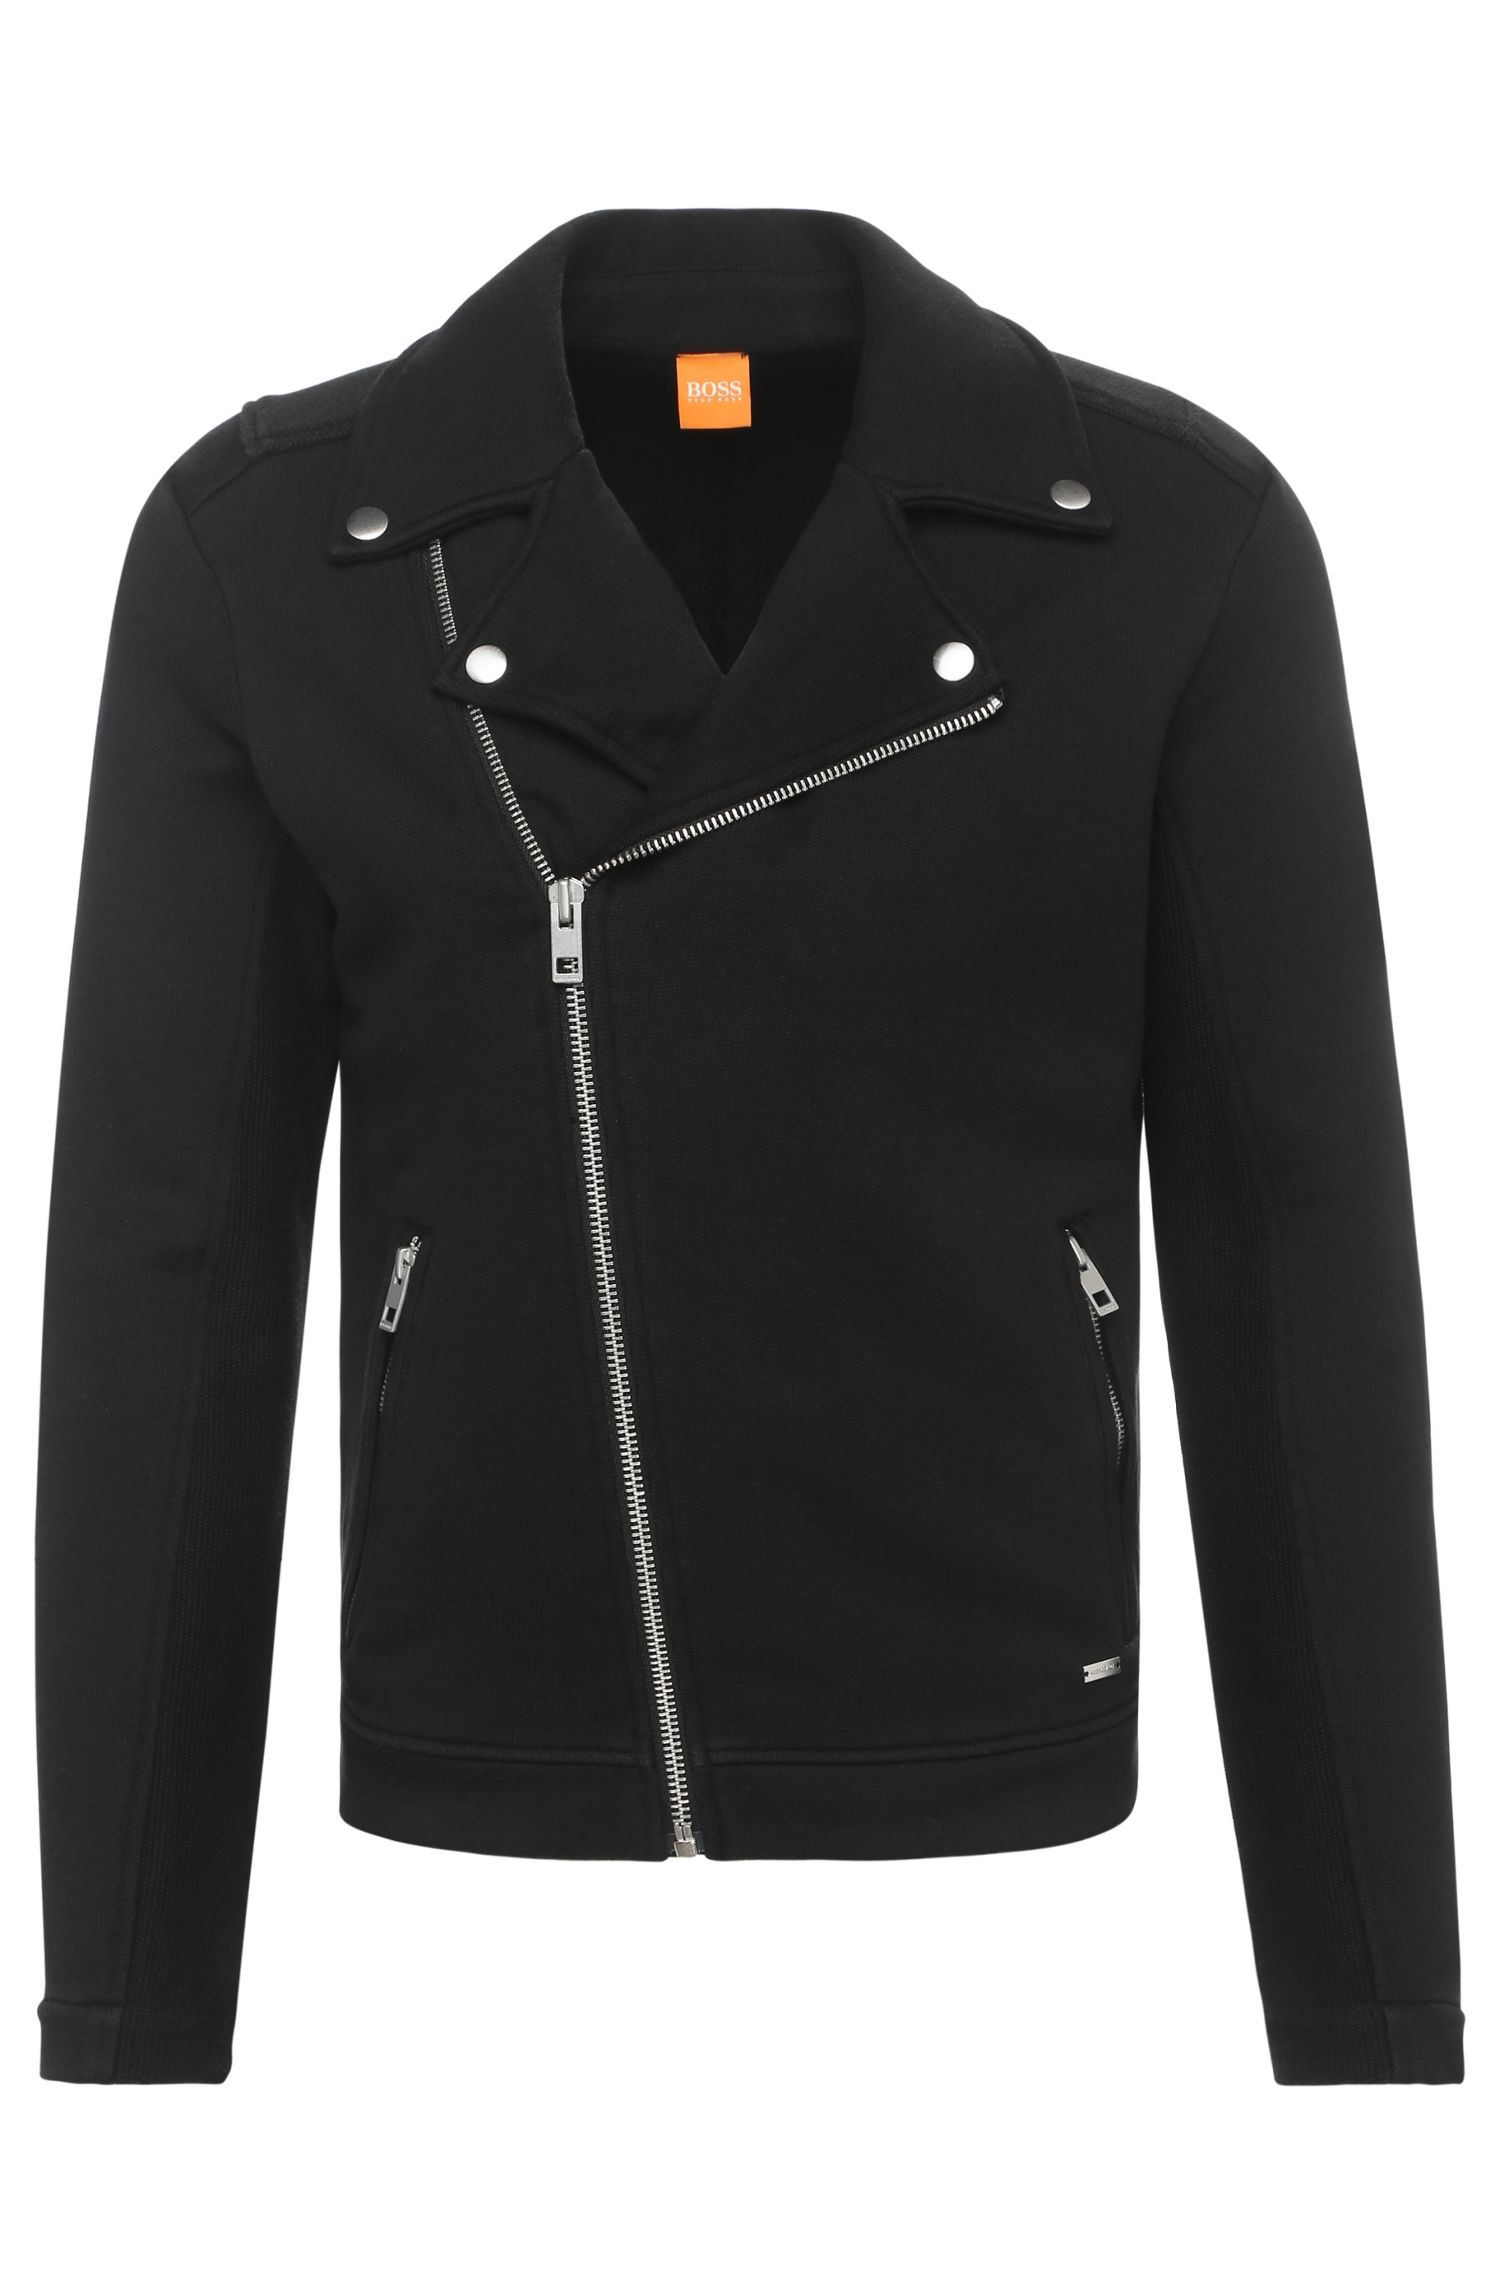 'Zpike' | Cotton Biker Jacket